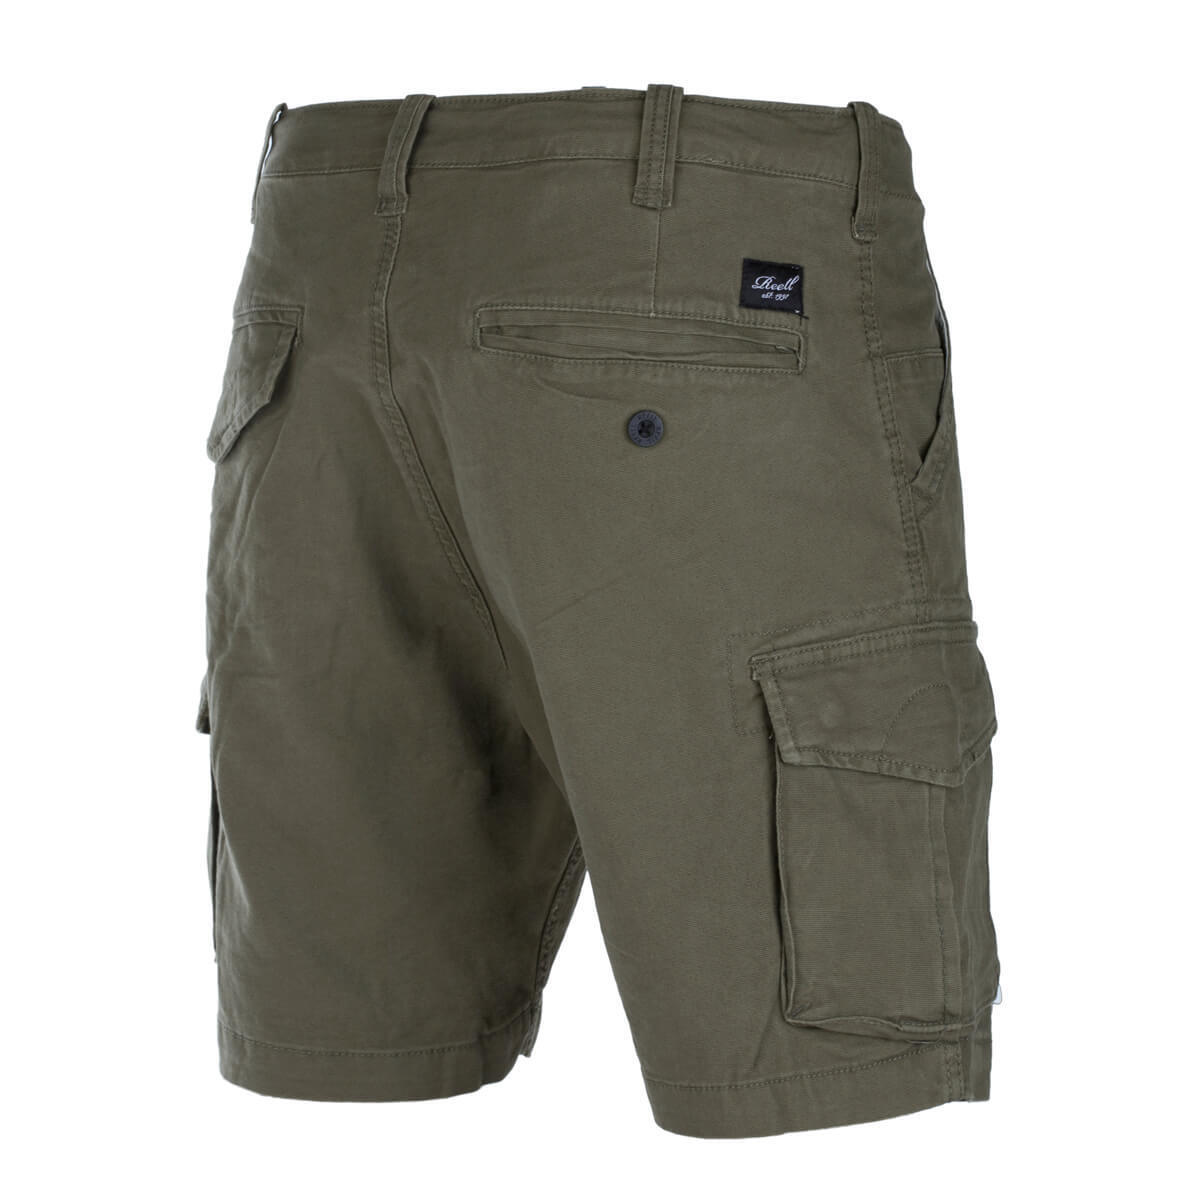 Reell City Cargo short Clay Olive short Canvas Cargo short with Stretch Olive